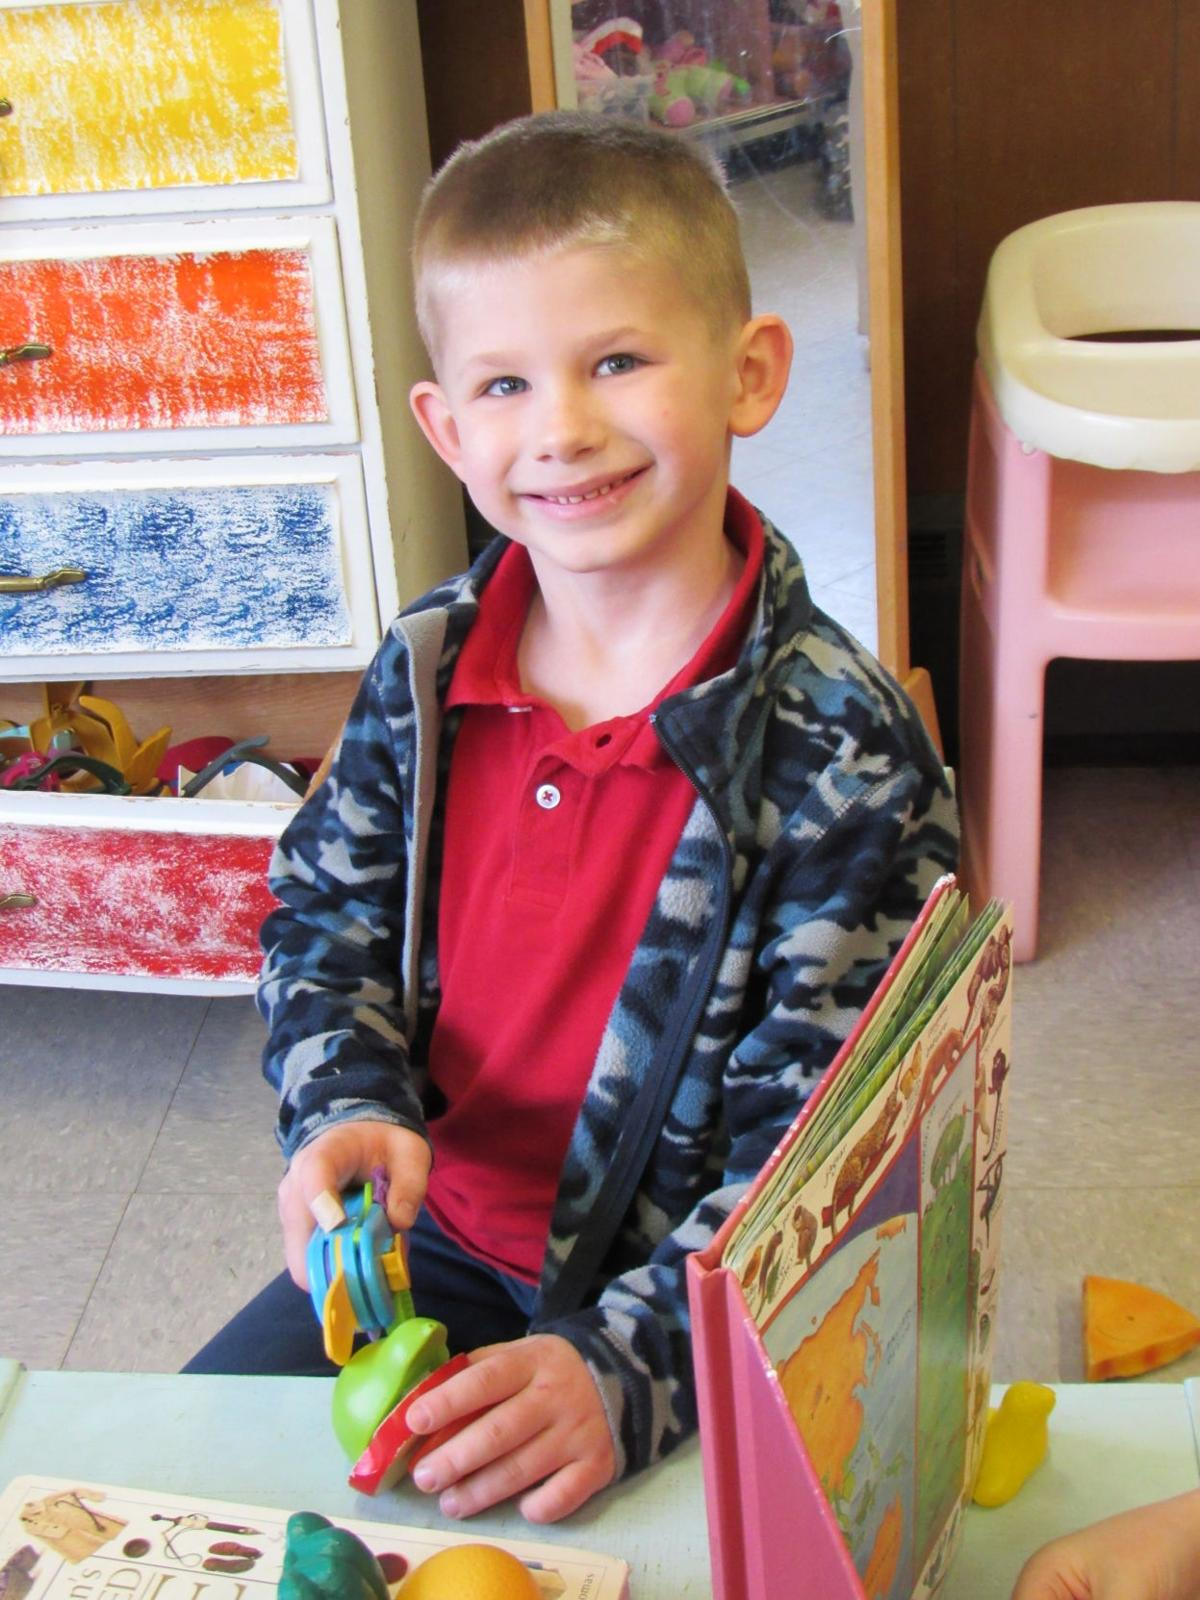 All smiles at St. Agnes School!